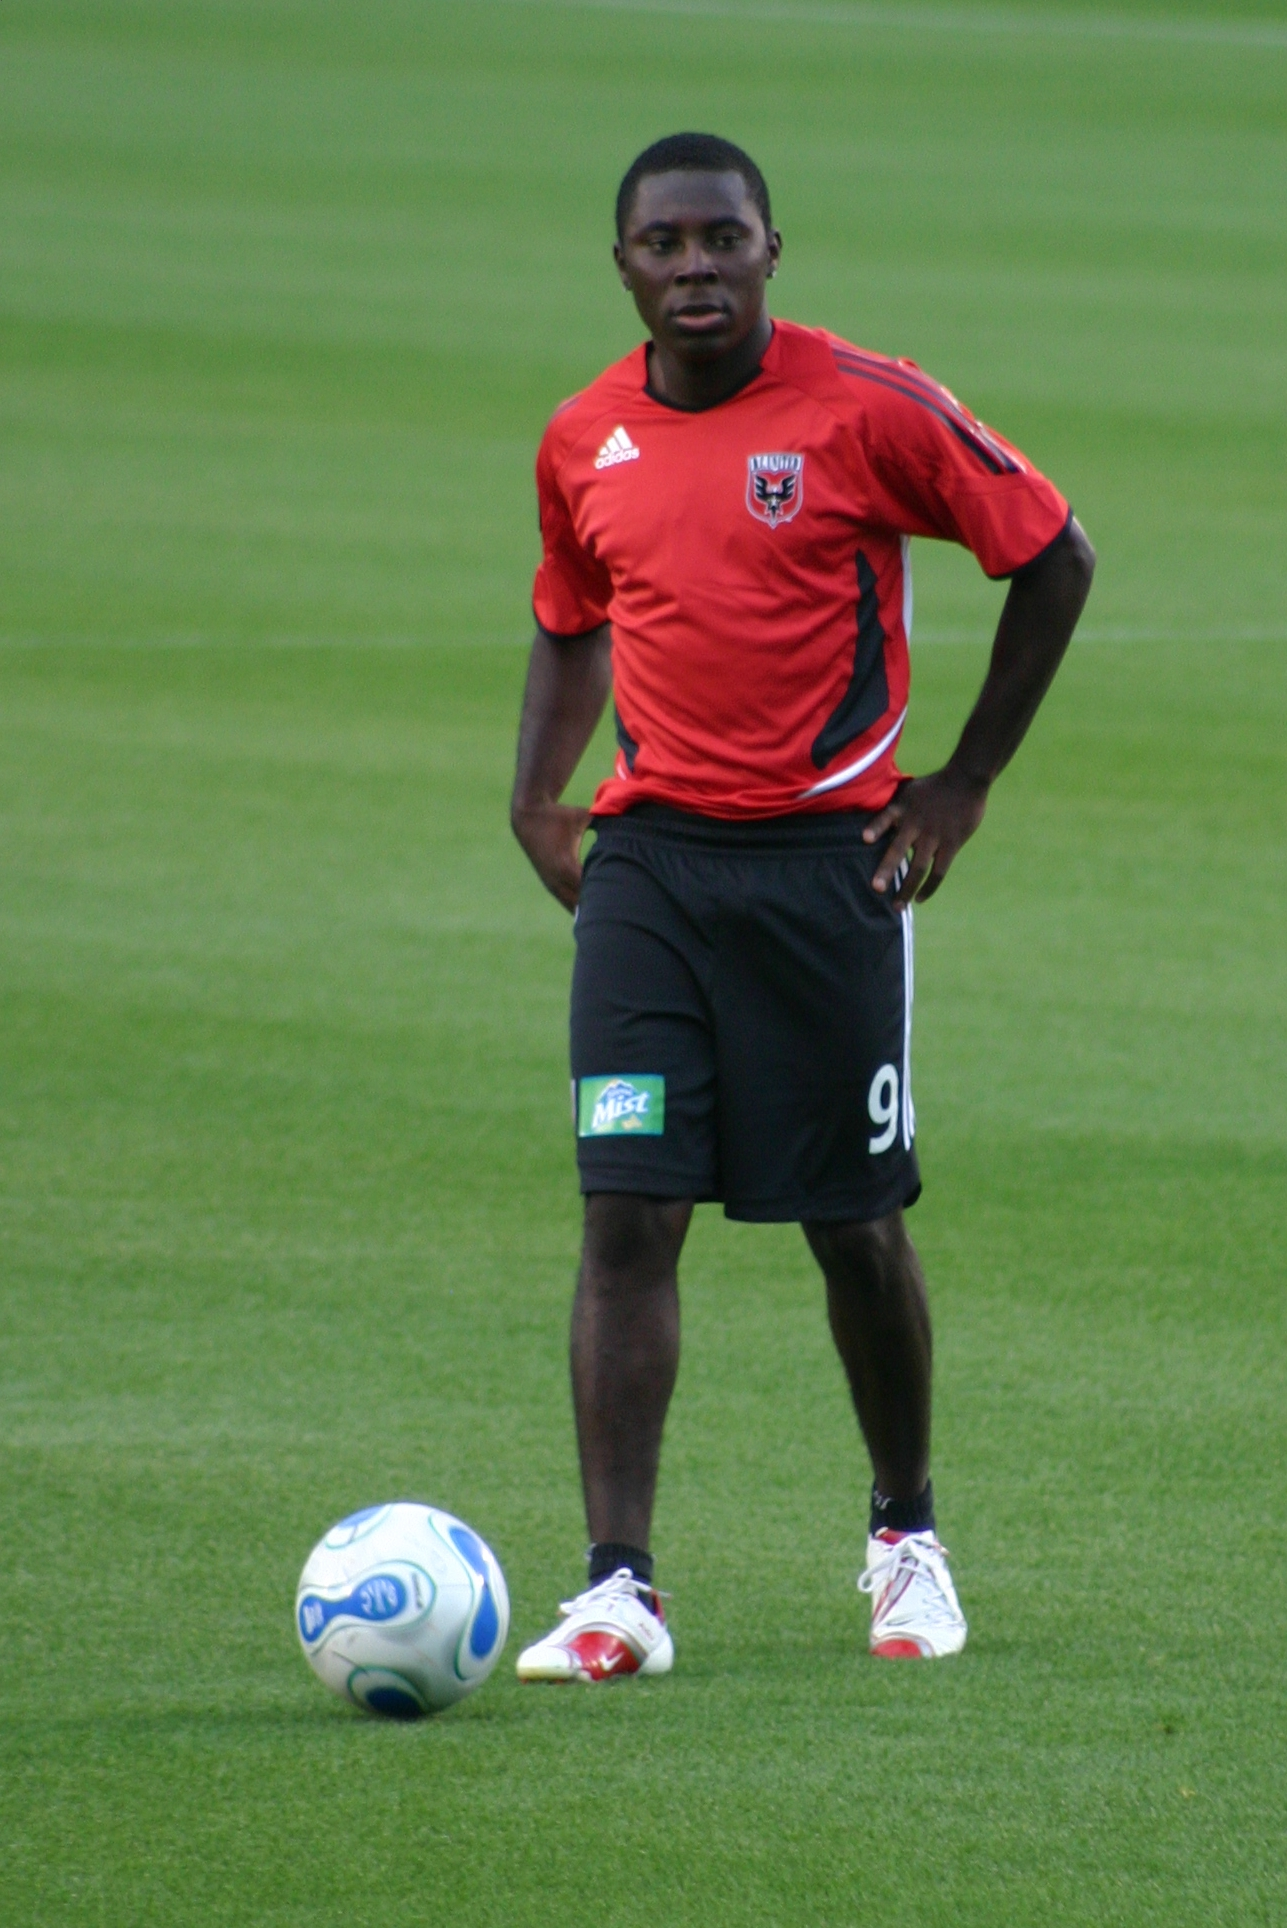 Who for the United States will step-up at the World Cup like Jozy Altidore did in the Confederations Cup? Freddy Adu could make a name for himself again if Bob Bradley gives him the chance. (Couresy Wikicommons)